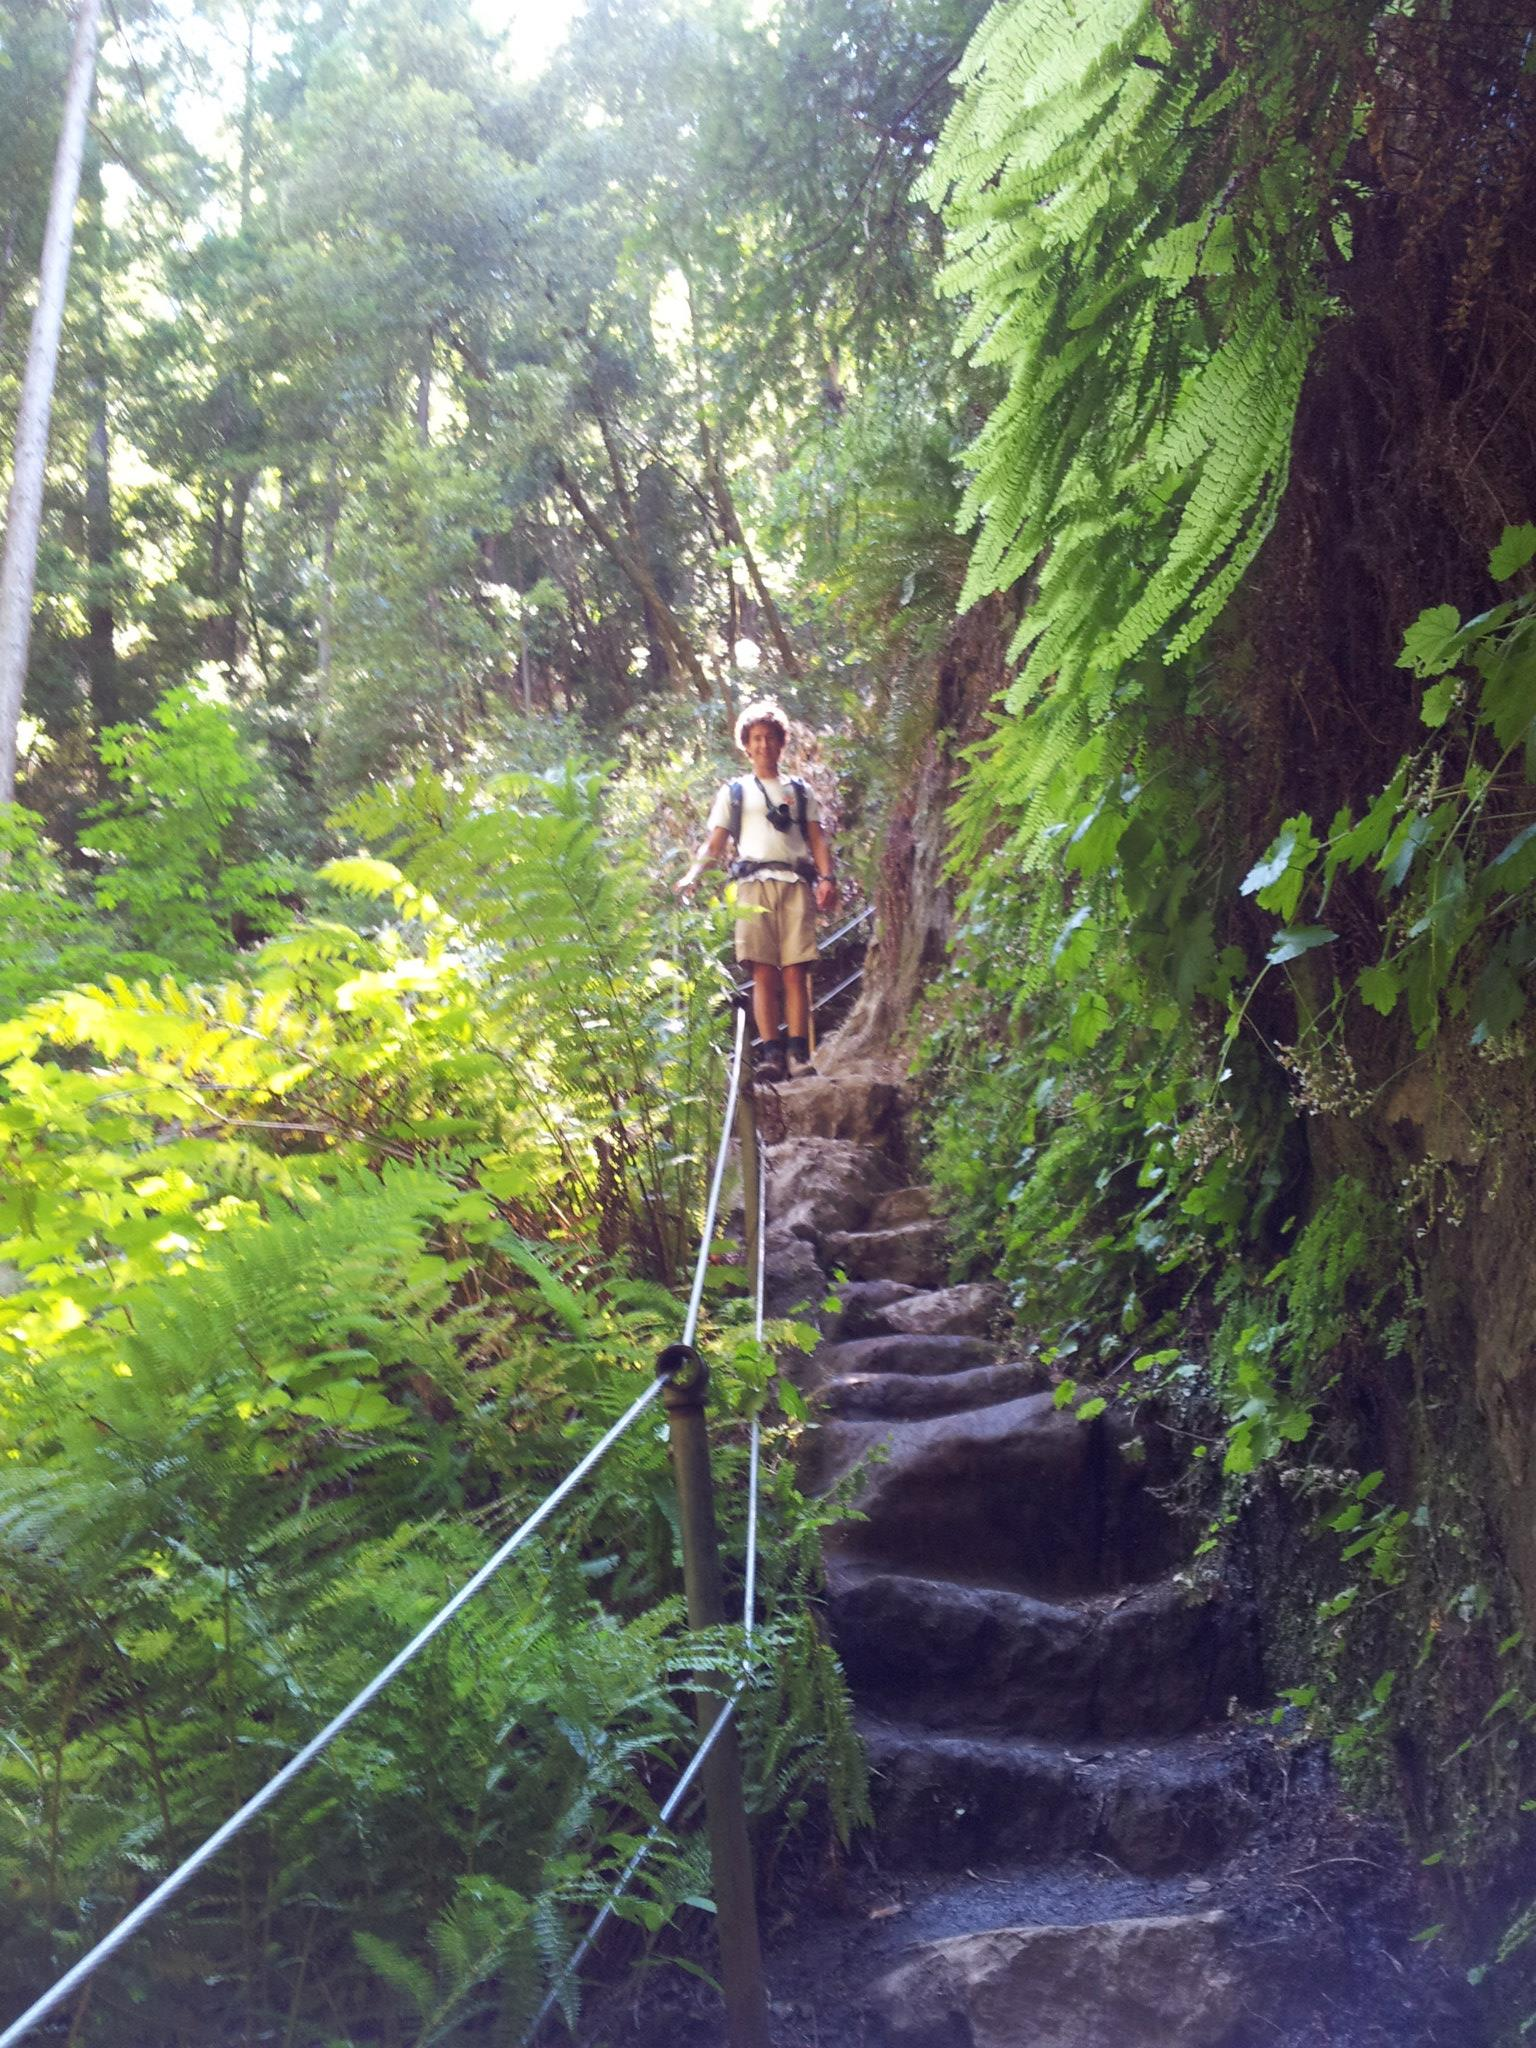 The trail was well maintained, even when it carved through wet rocks